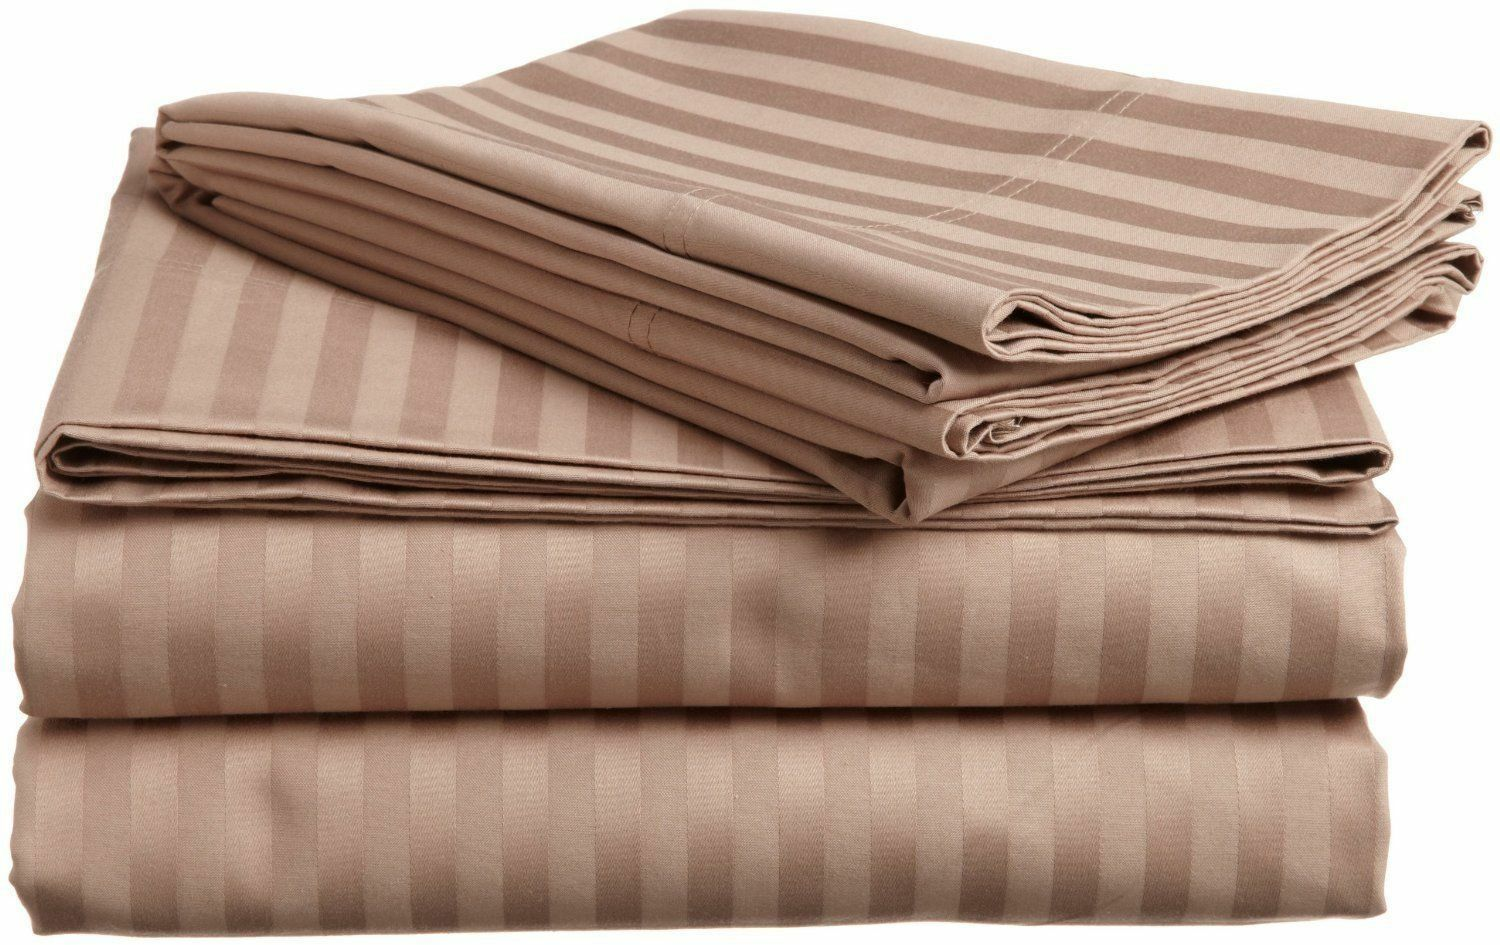 Elastic All Around Fits Fitted Sheet Taupe Stripe Choose Deep Pkt & Größe 1000 TC